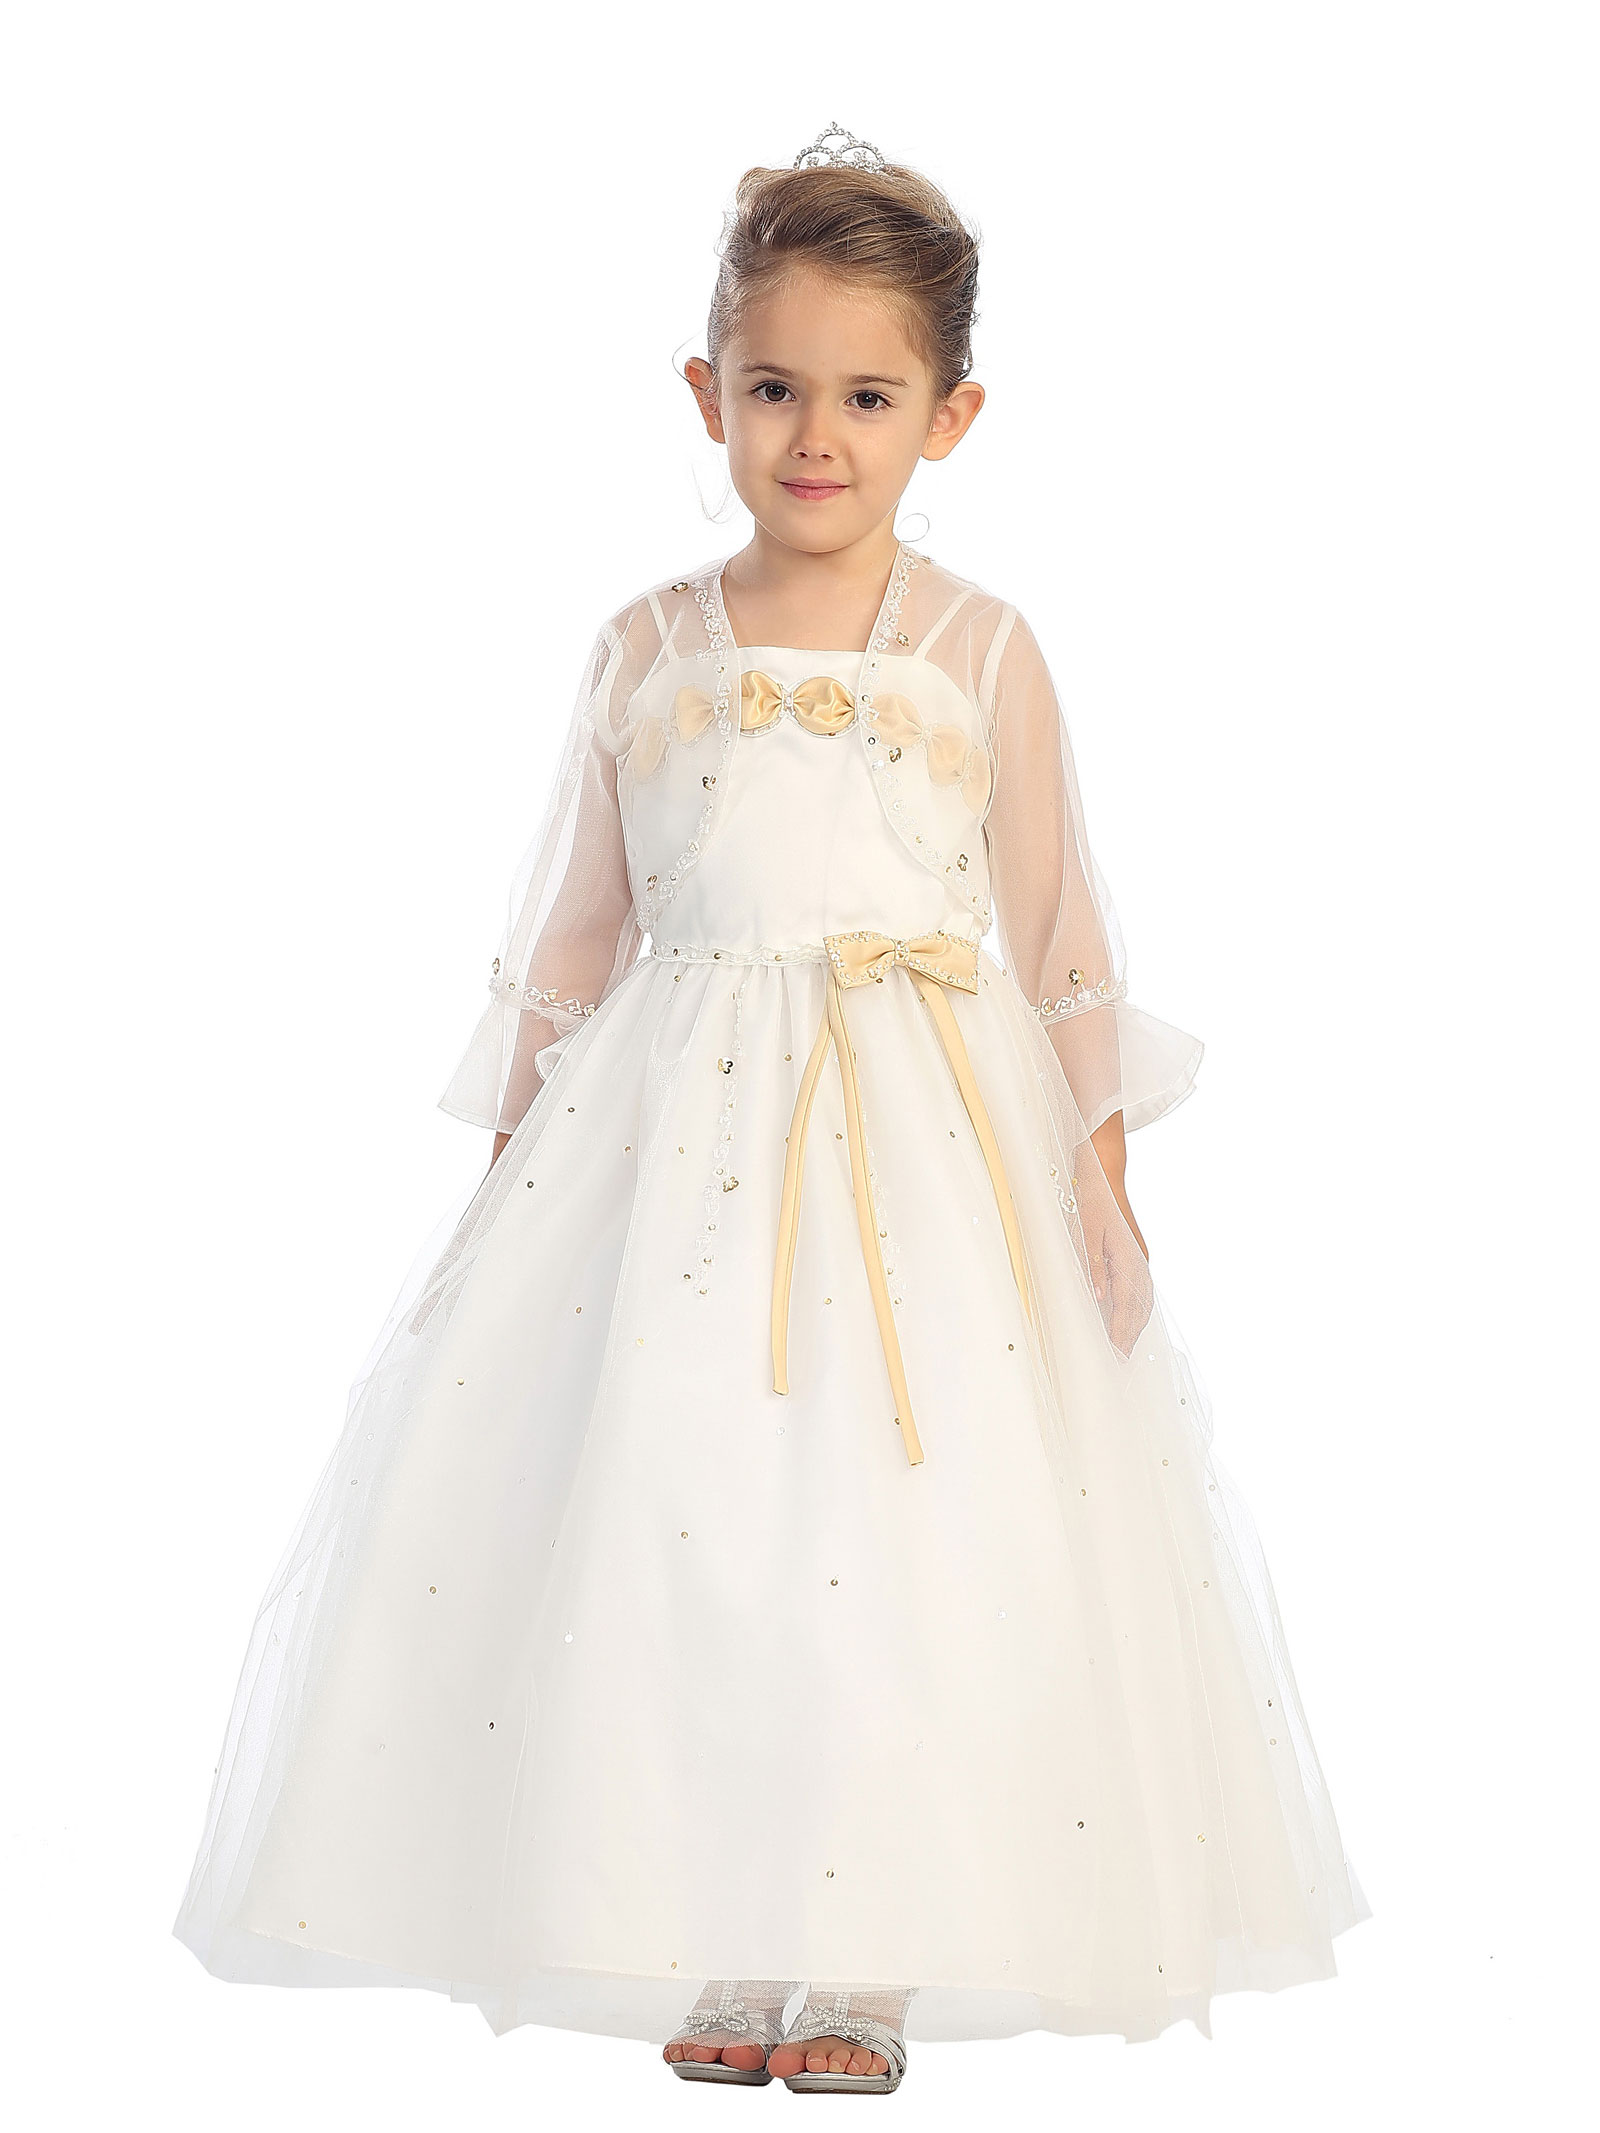 Long Sleeve Dresses - Flower Girl Dresses - Flower Girl Dress For Less